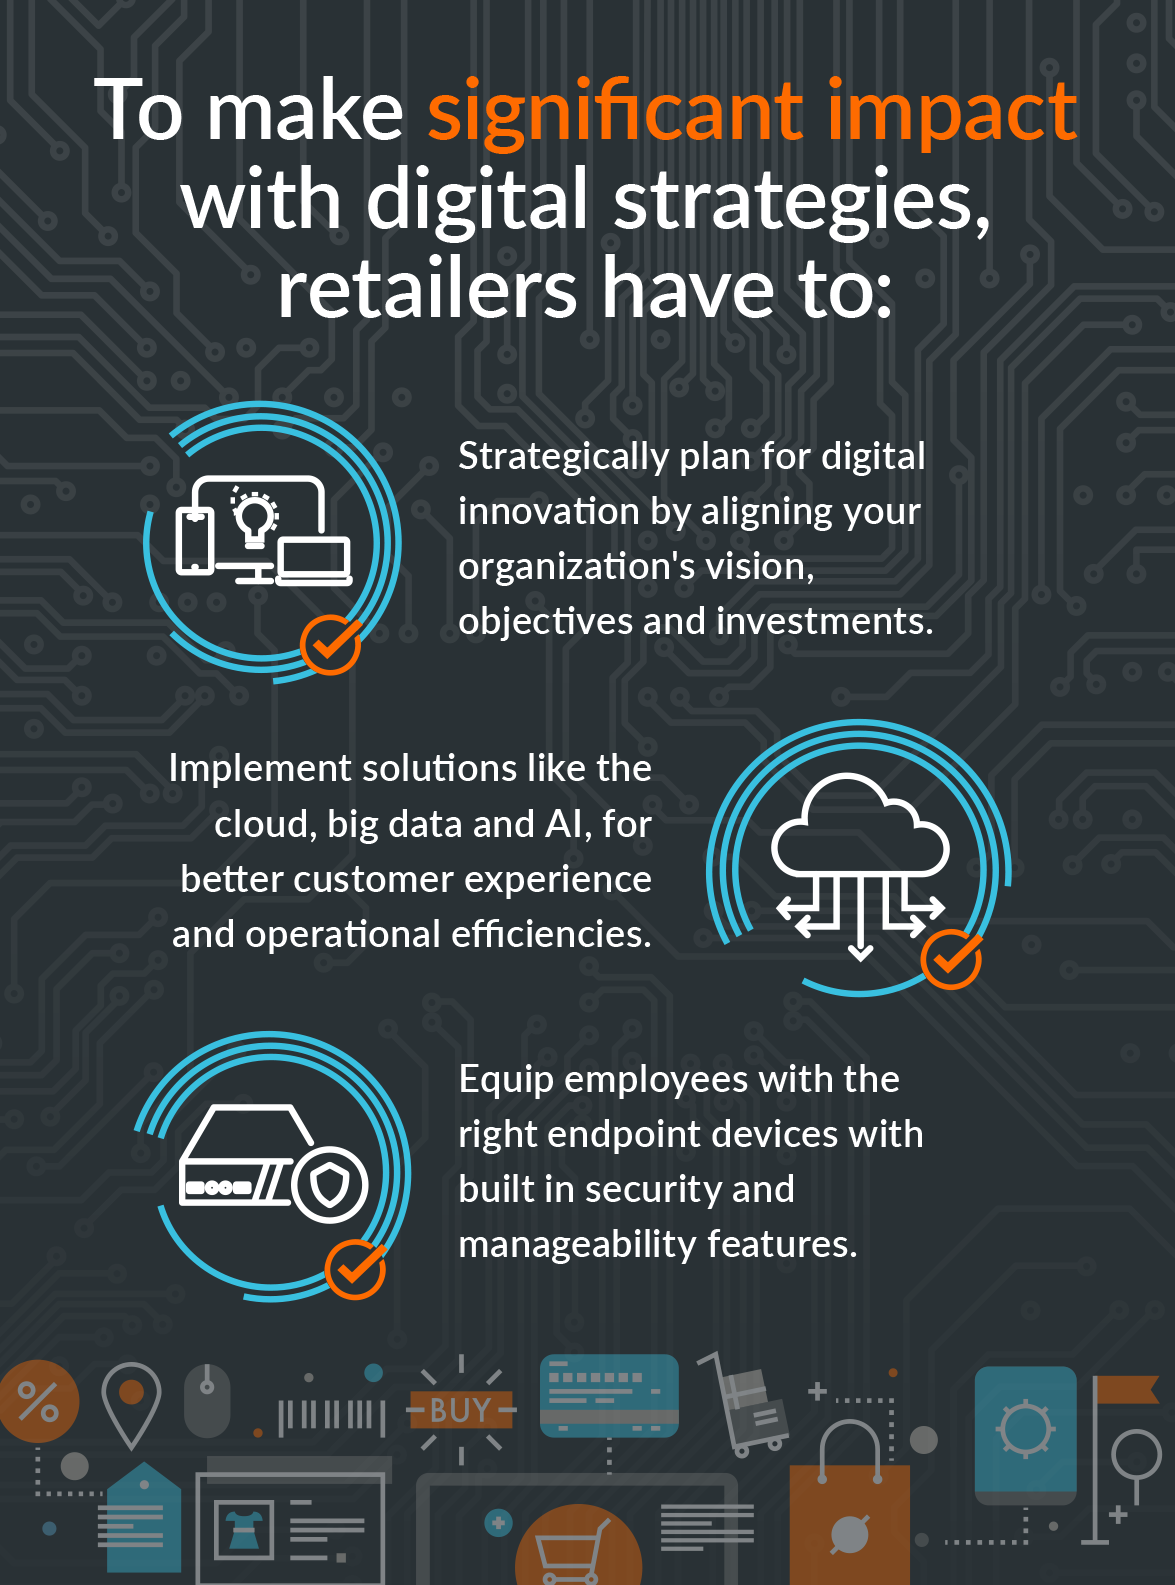 Digital Transformation Is Revolutionizing the Retail Experience